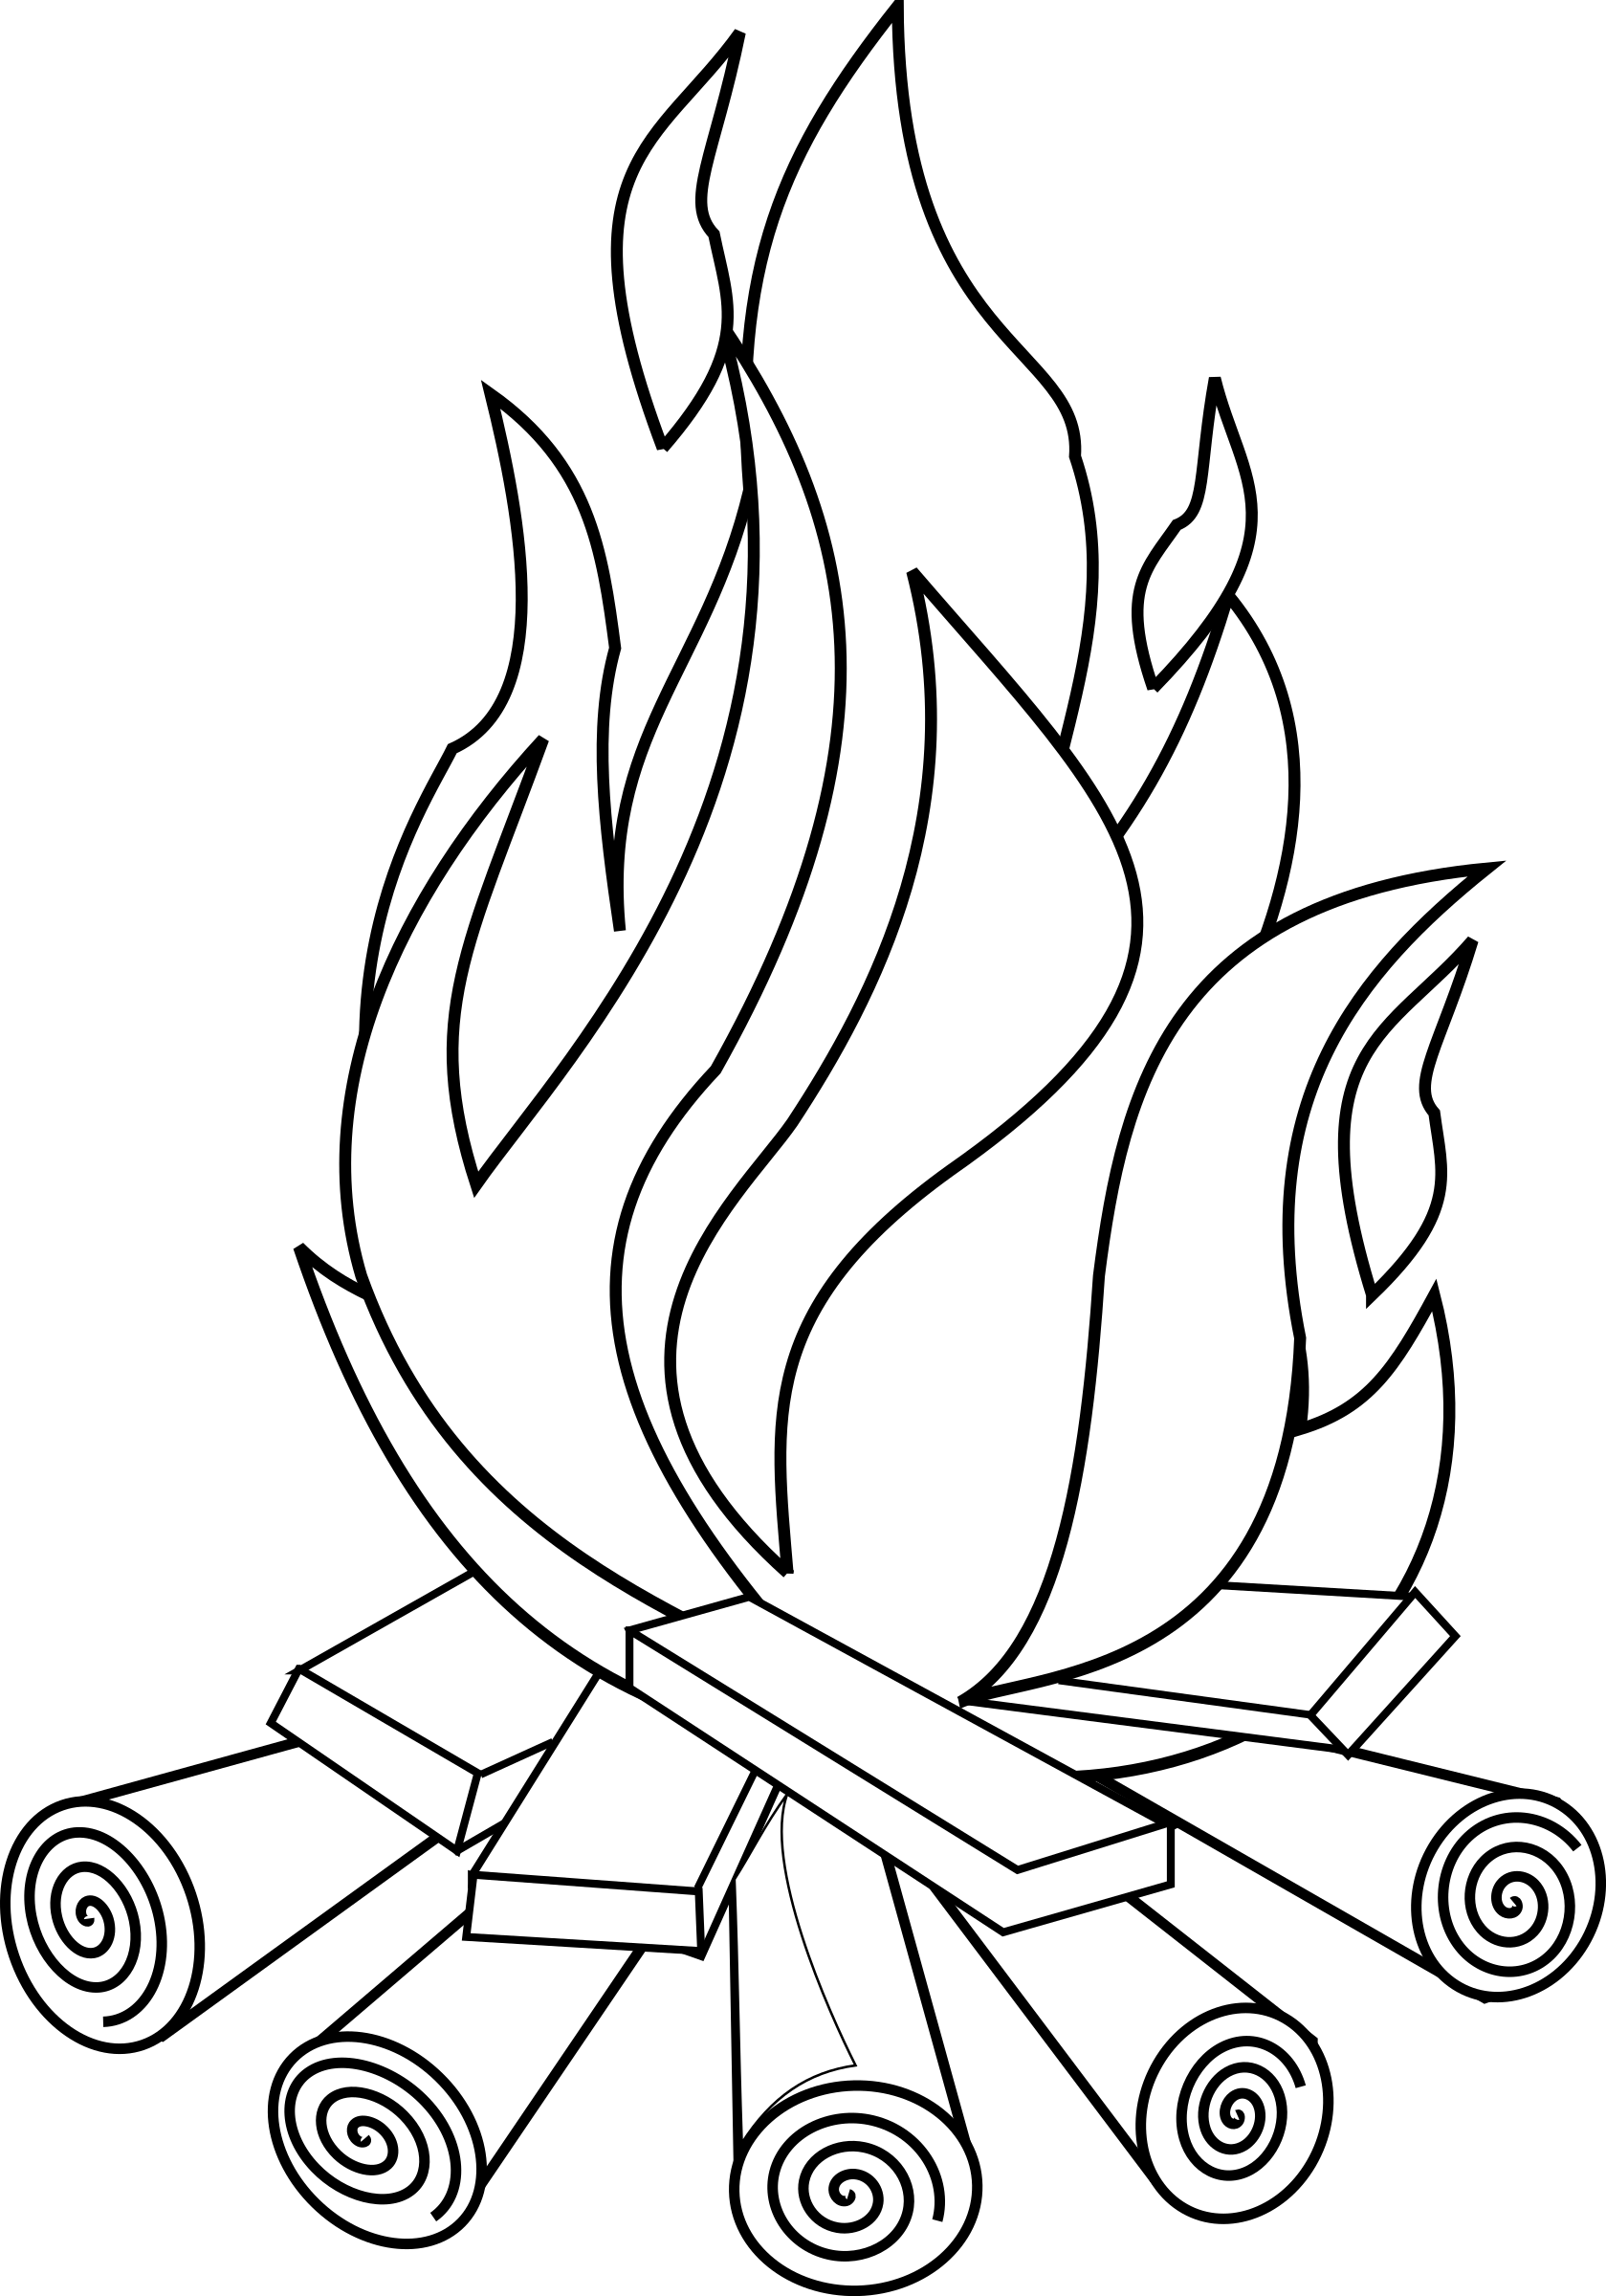 Clipart fire black and white. Line art